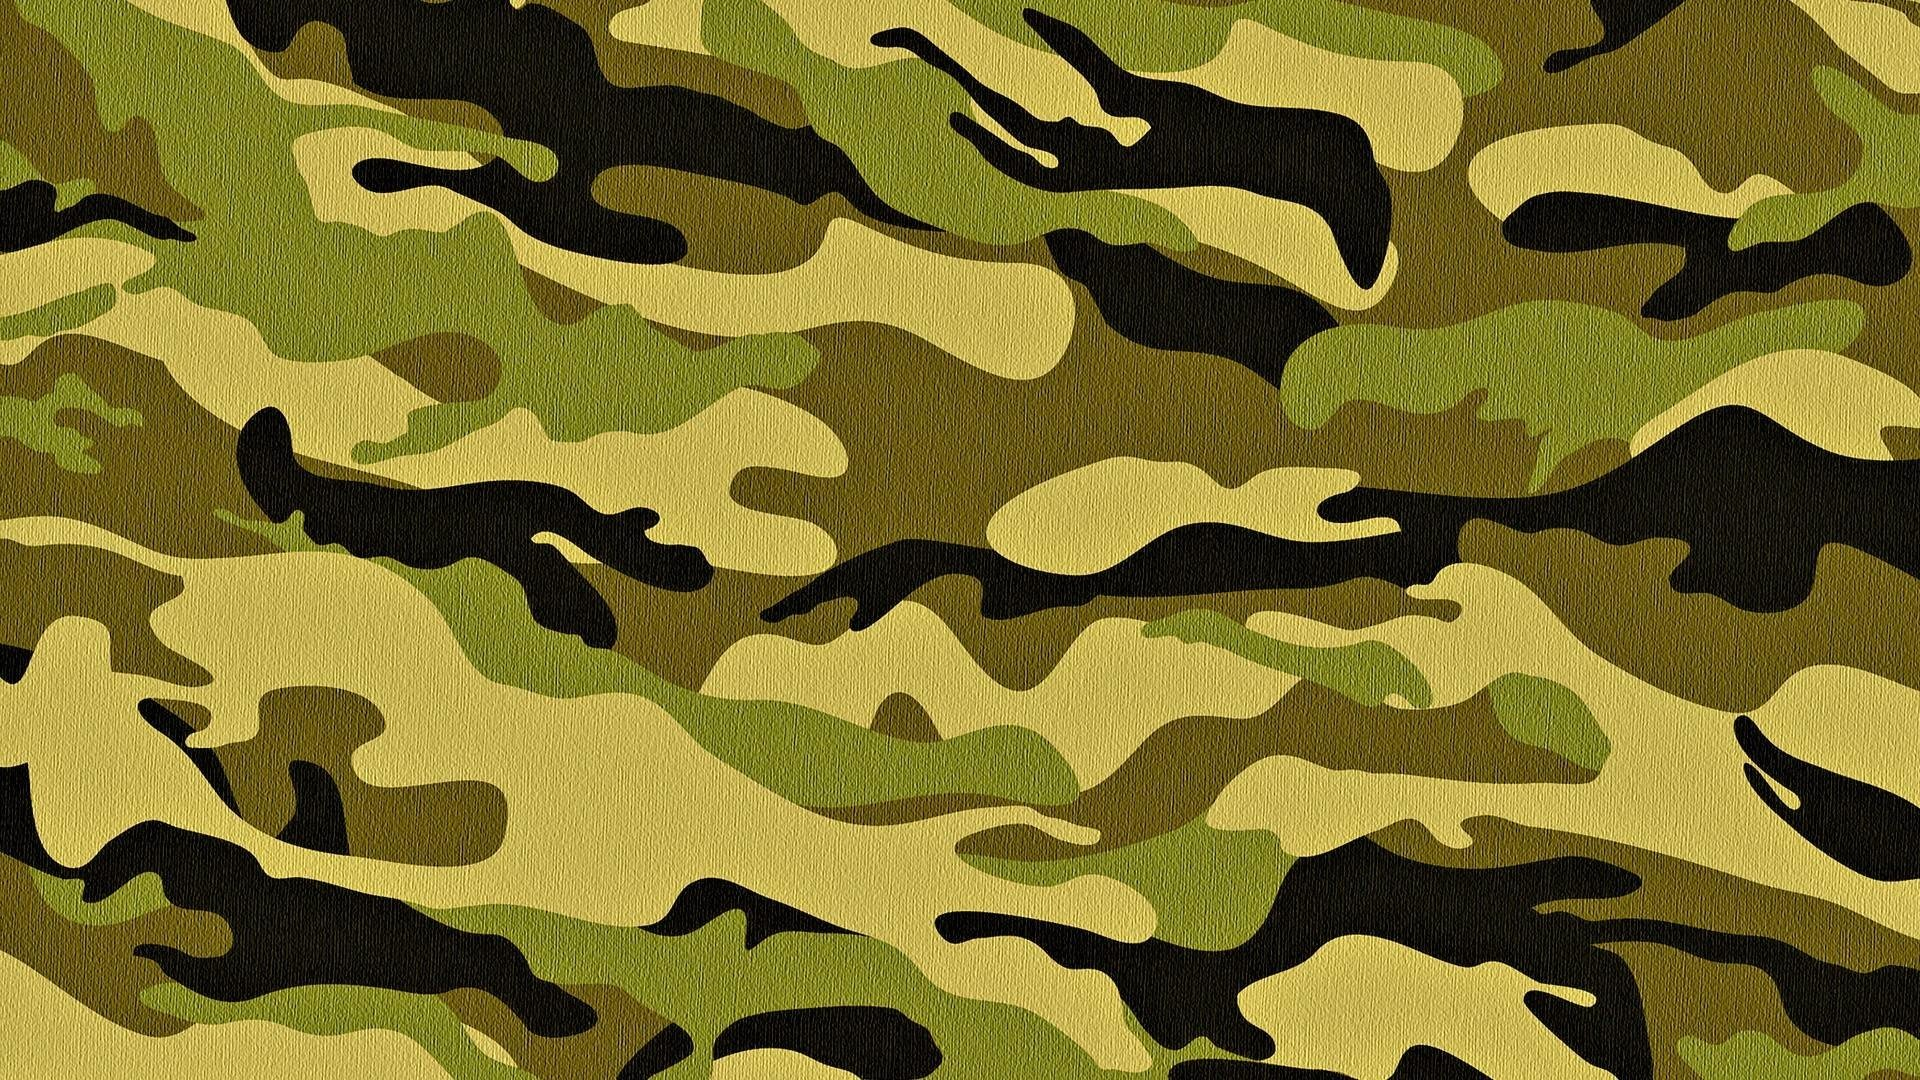 1920x1080  Army Camouflage Wallpaper